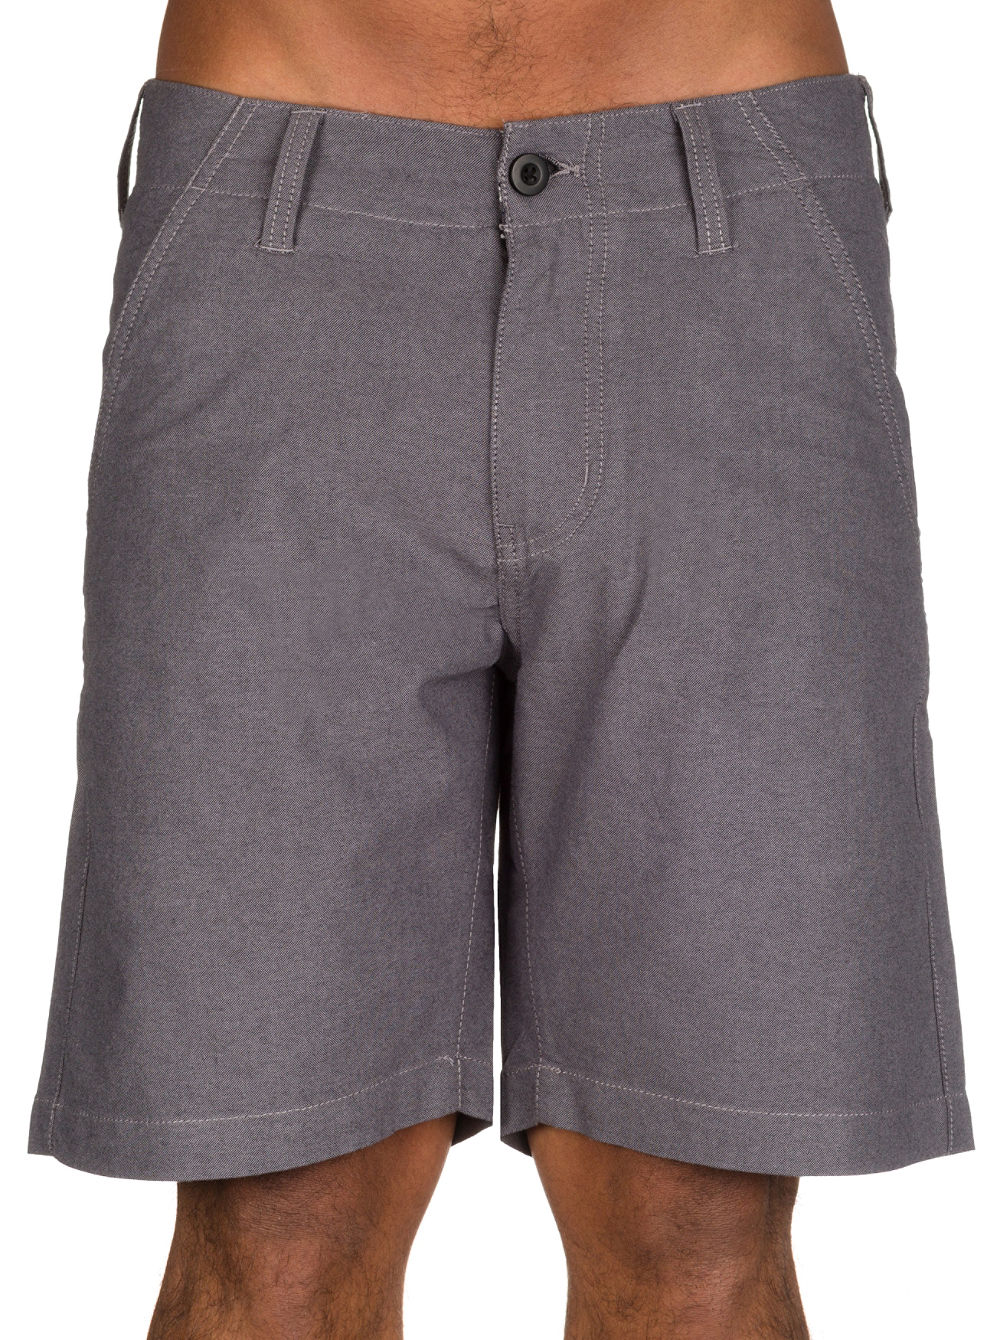 Kingfield Shorts